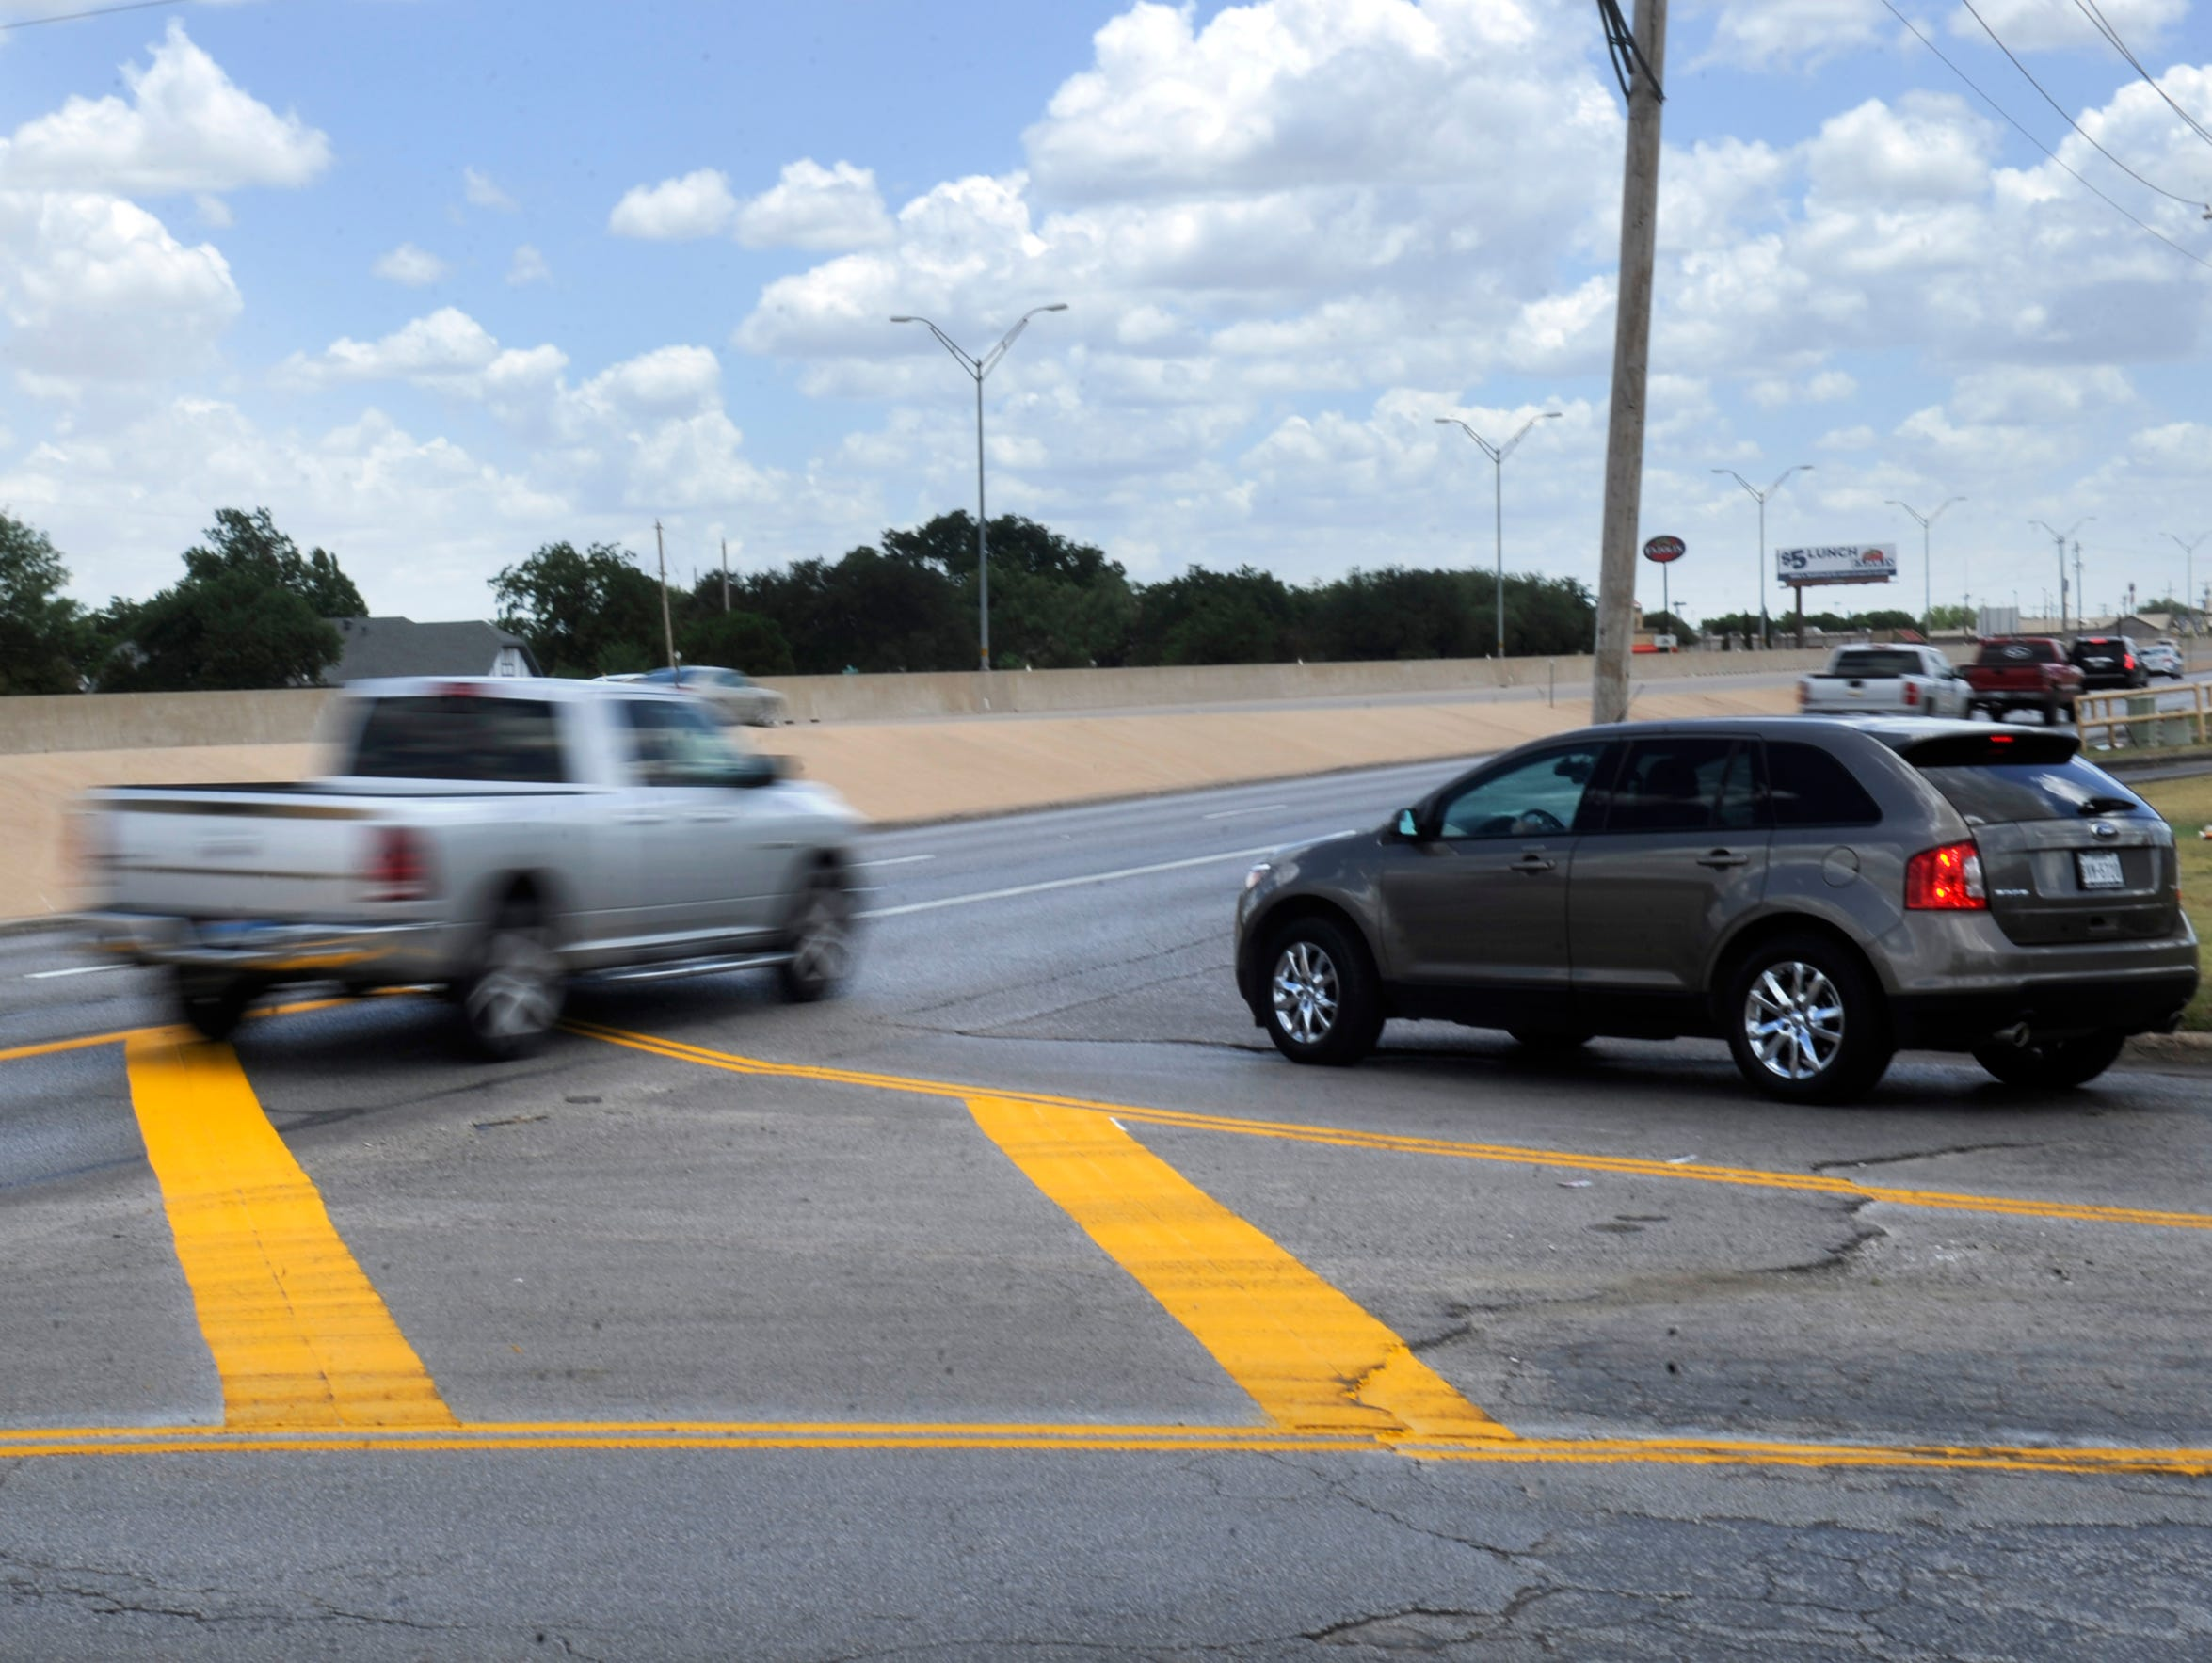 A pickup drives through the new right-turn-only lane on South Clack Street at Curry Lane on July 19, instead of turning right as is now required for the far right lane.